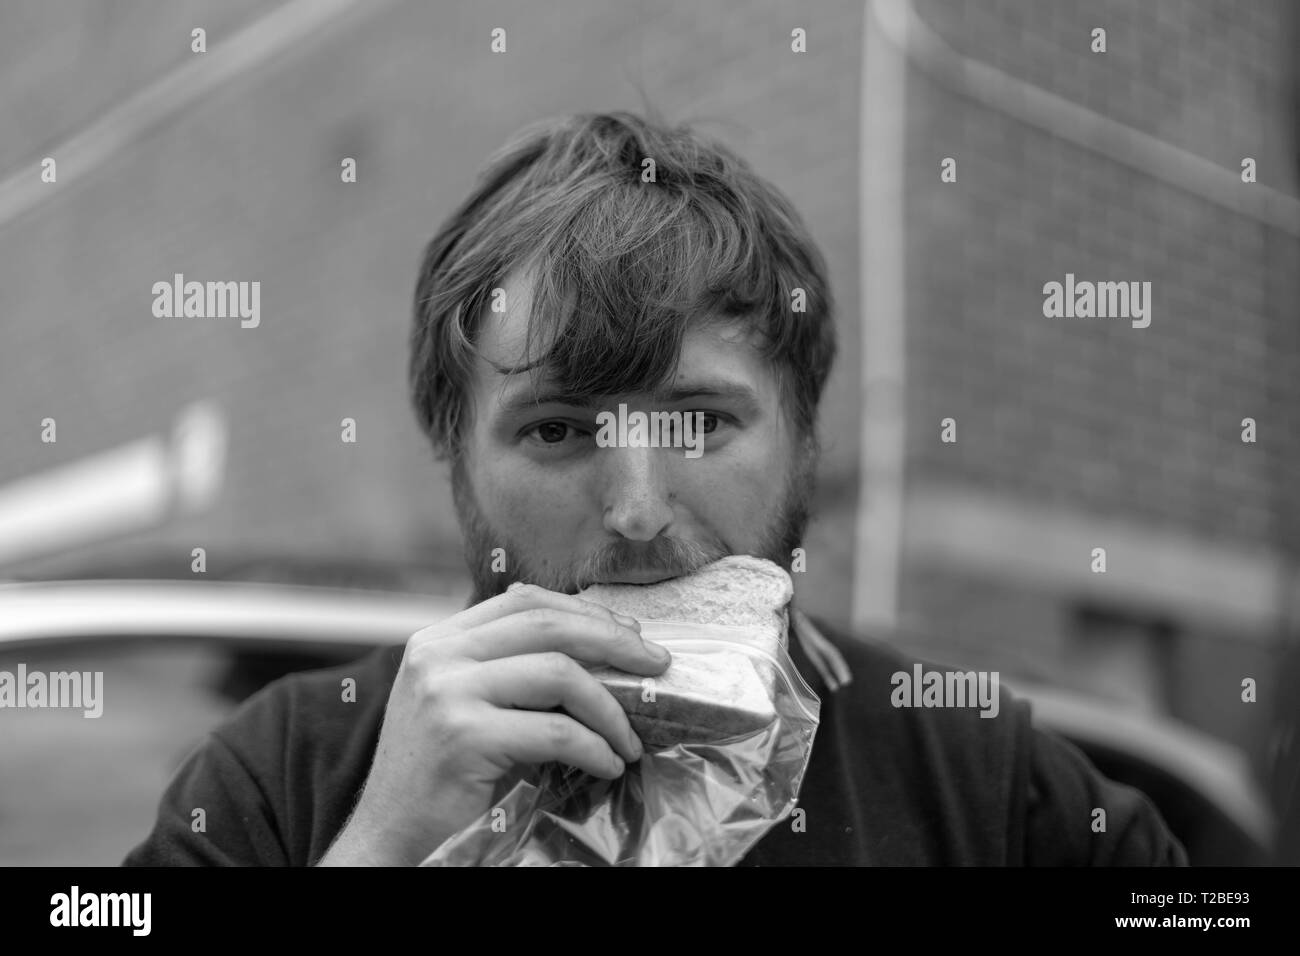 A tradesman with a dirty face eats his lunch in Melbourne - Stock Image